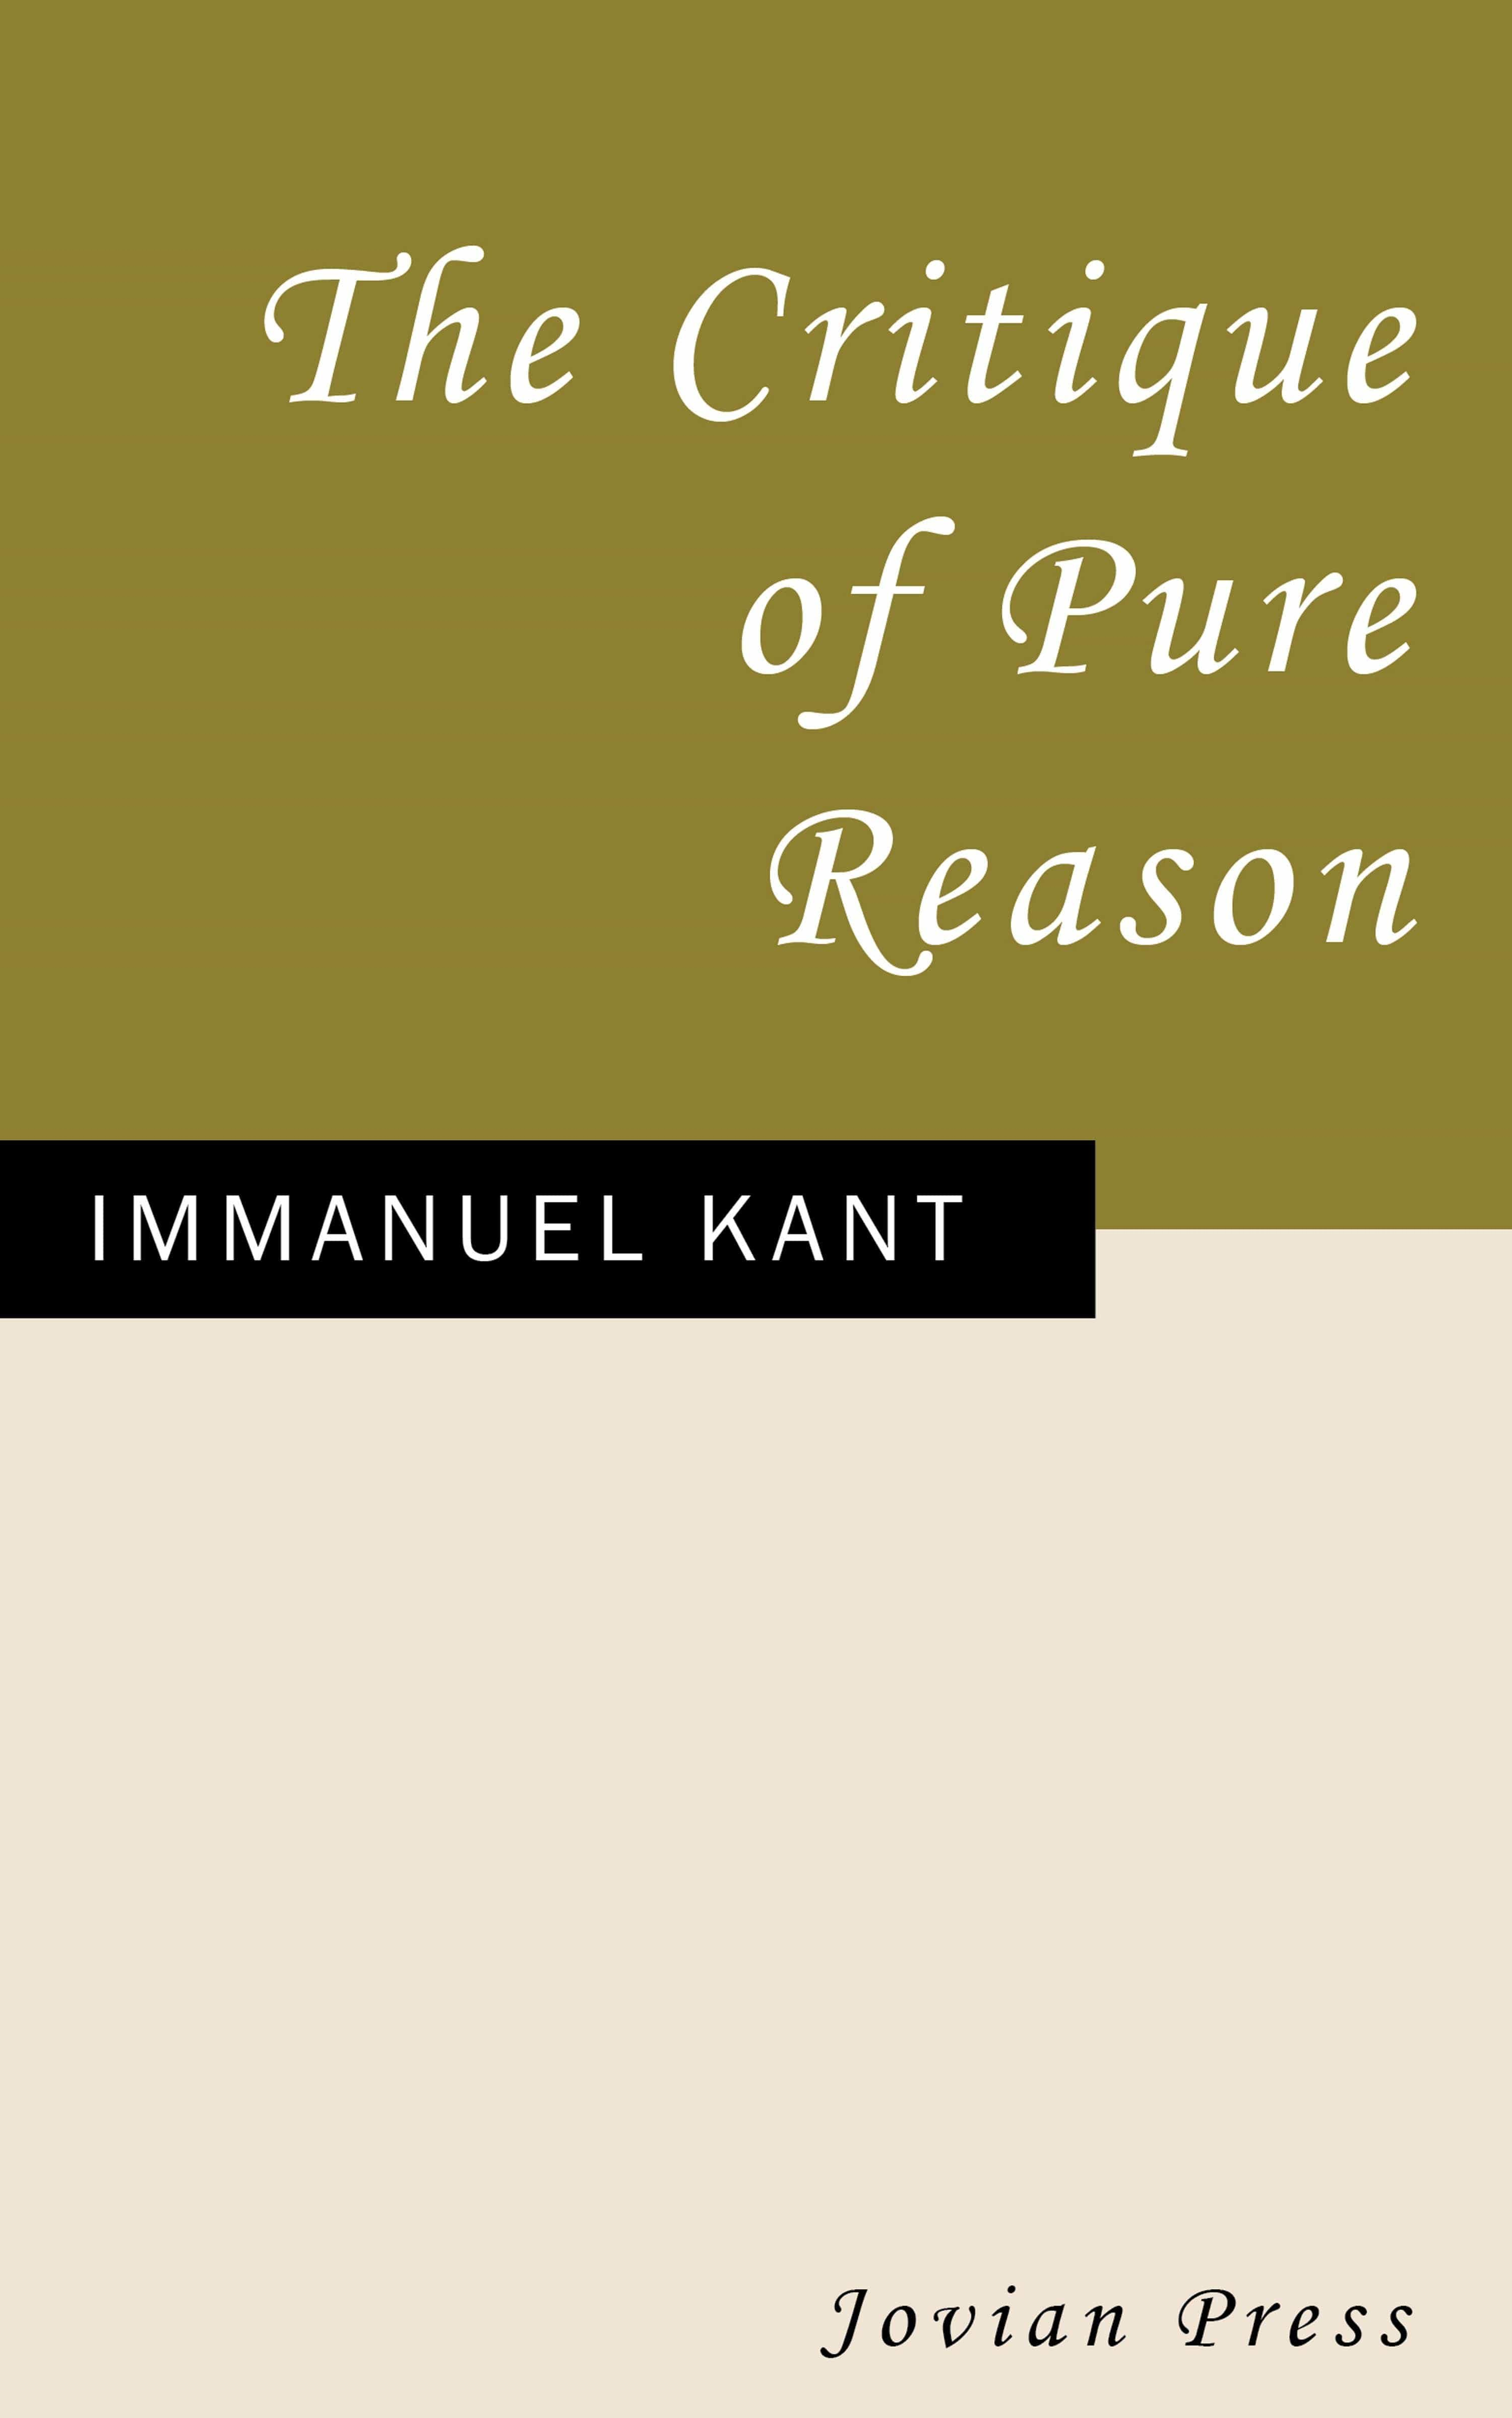 the critique of pure reason (ebook)-immanuel kant-9781537807898